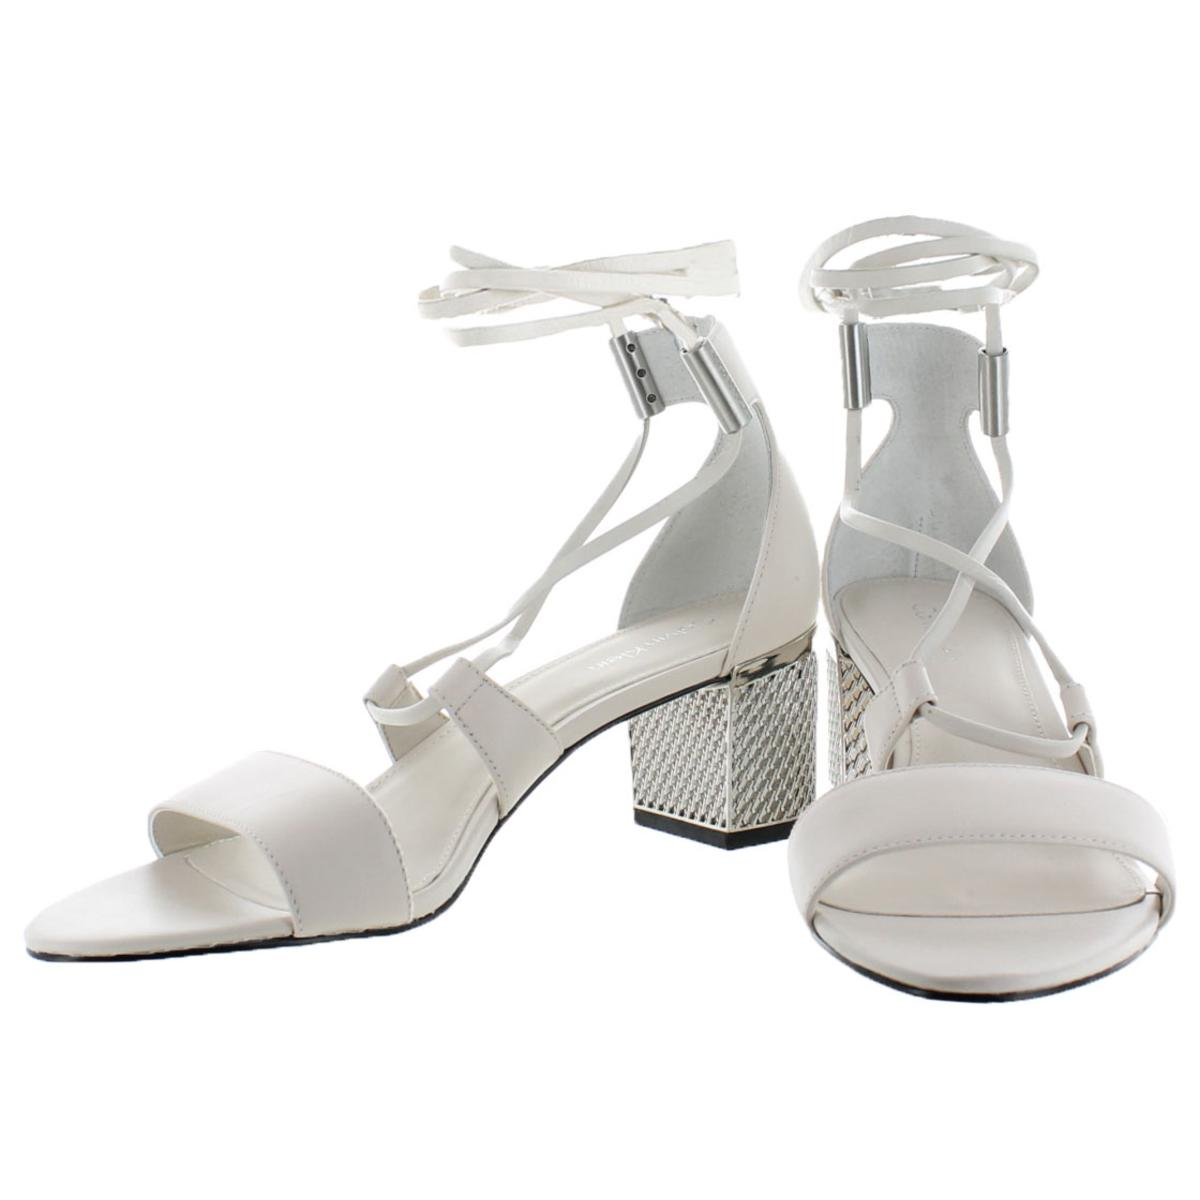 Calvin-Klein-Natania-Women-039-s-Leather-Open-Toe-Lace-Up-Block-Heel-Shoe thumbnail 8